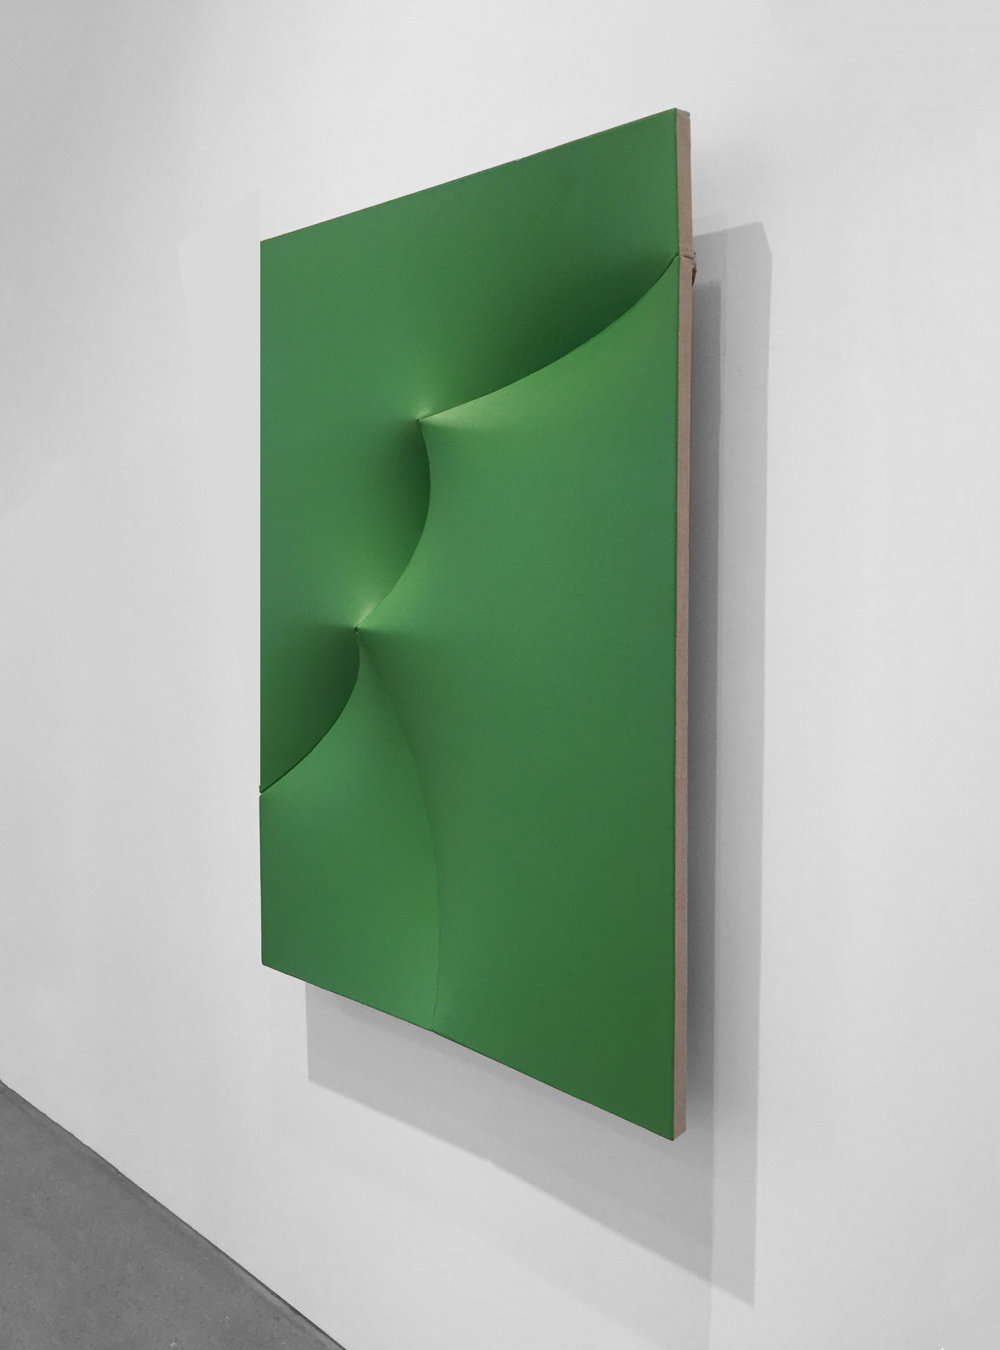 POINTING OUT BROKEN GREEN Acrylic on linen  47 x 35 x 4 in  INQUIRE